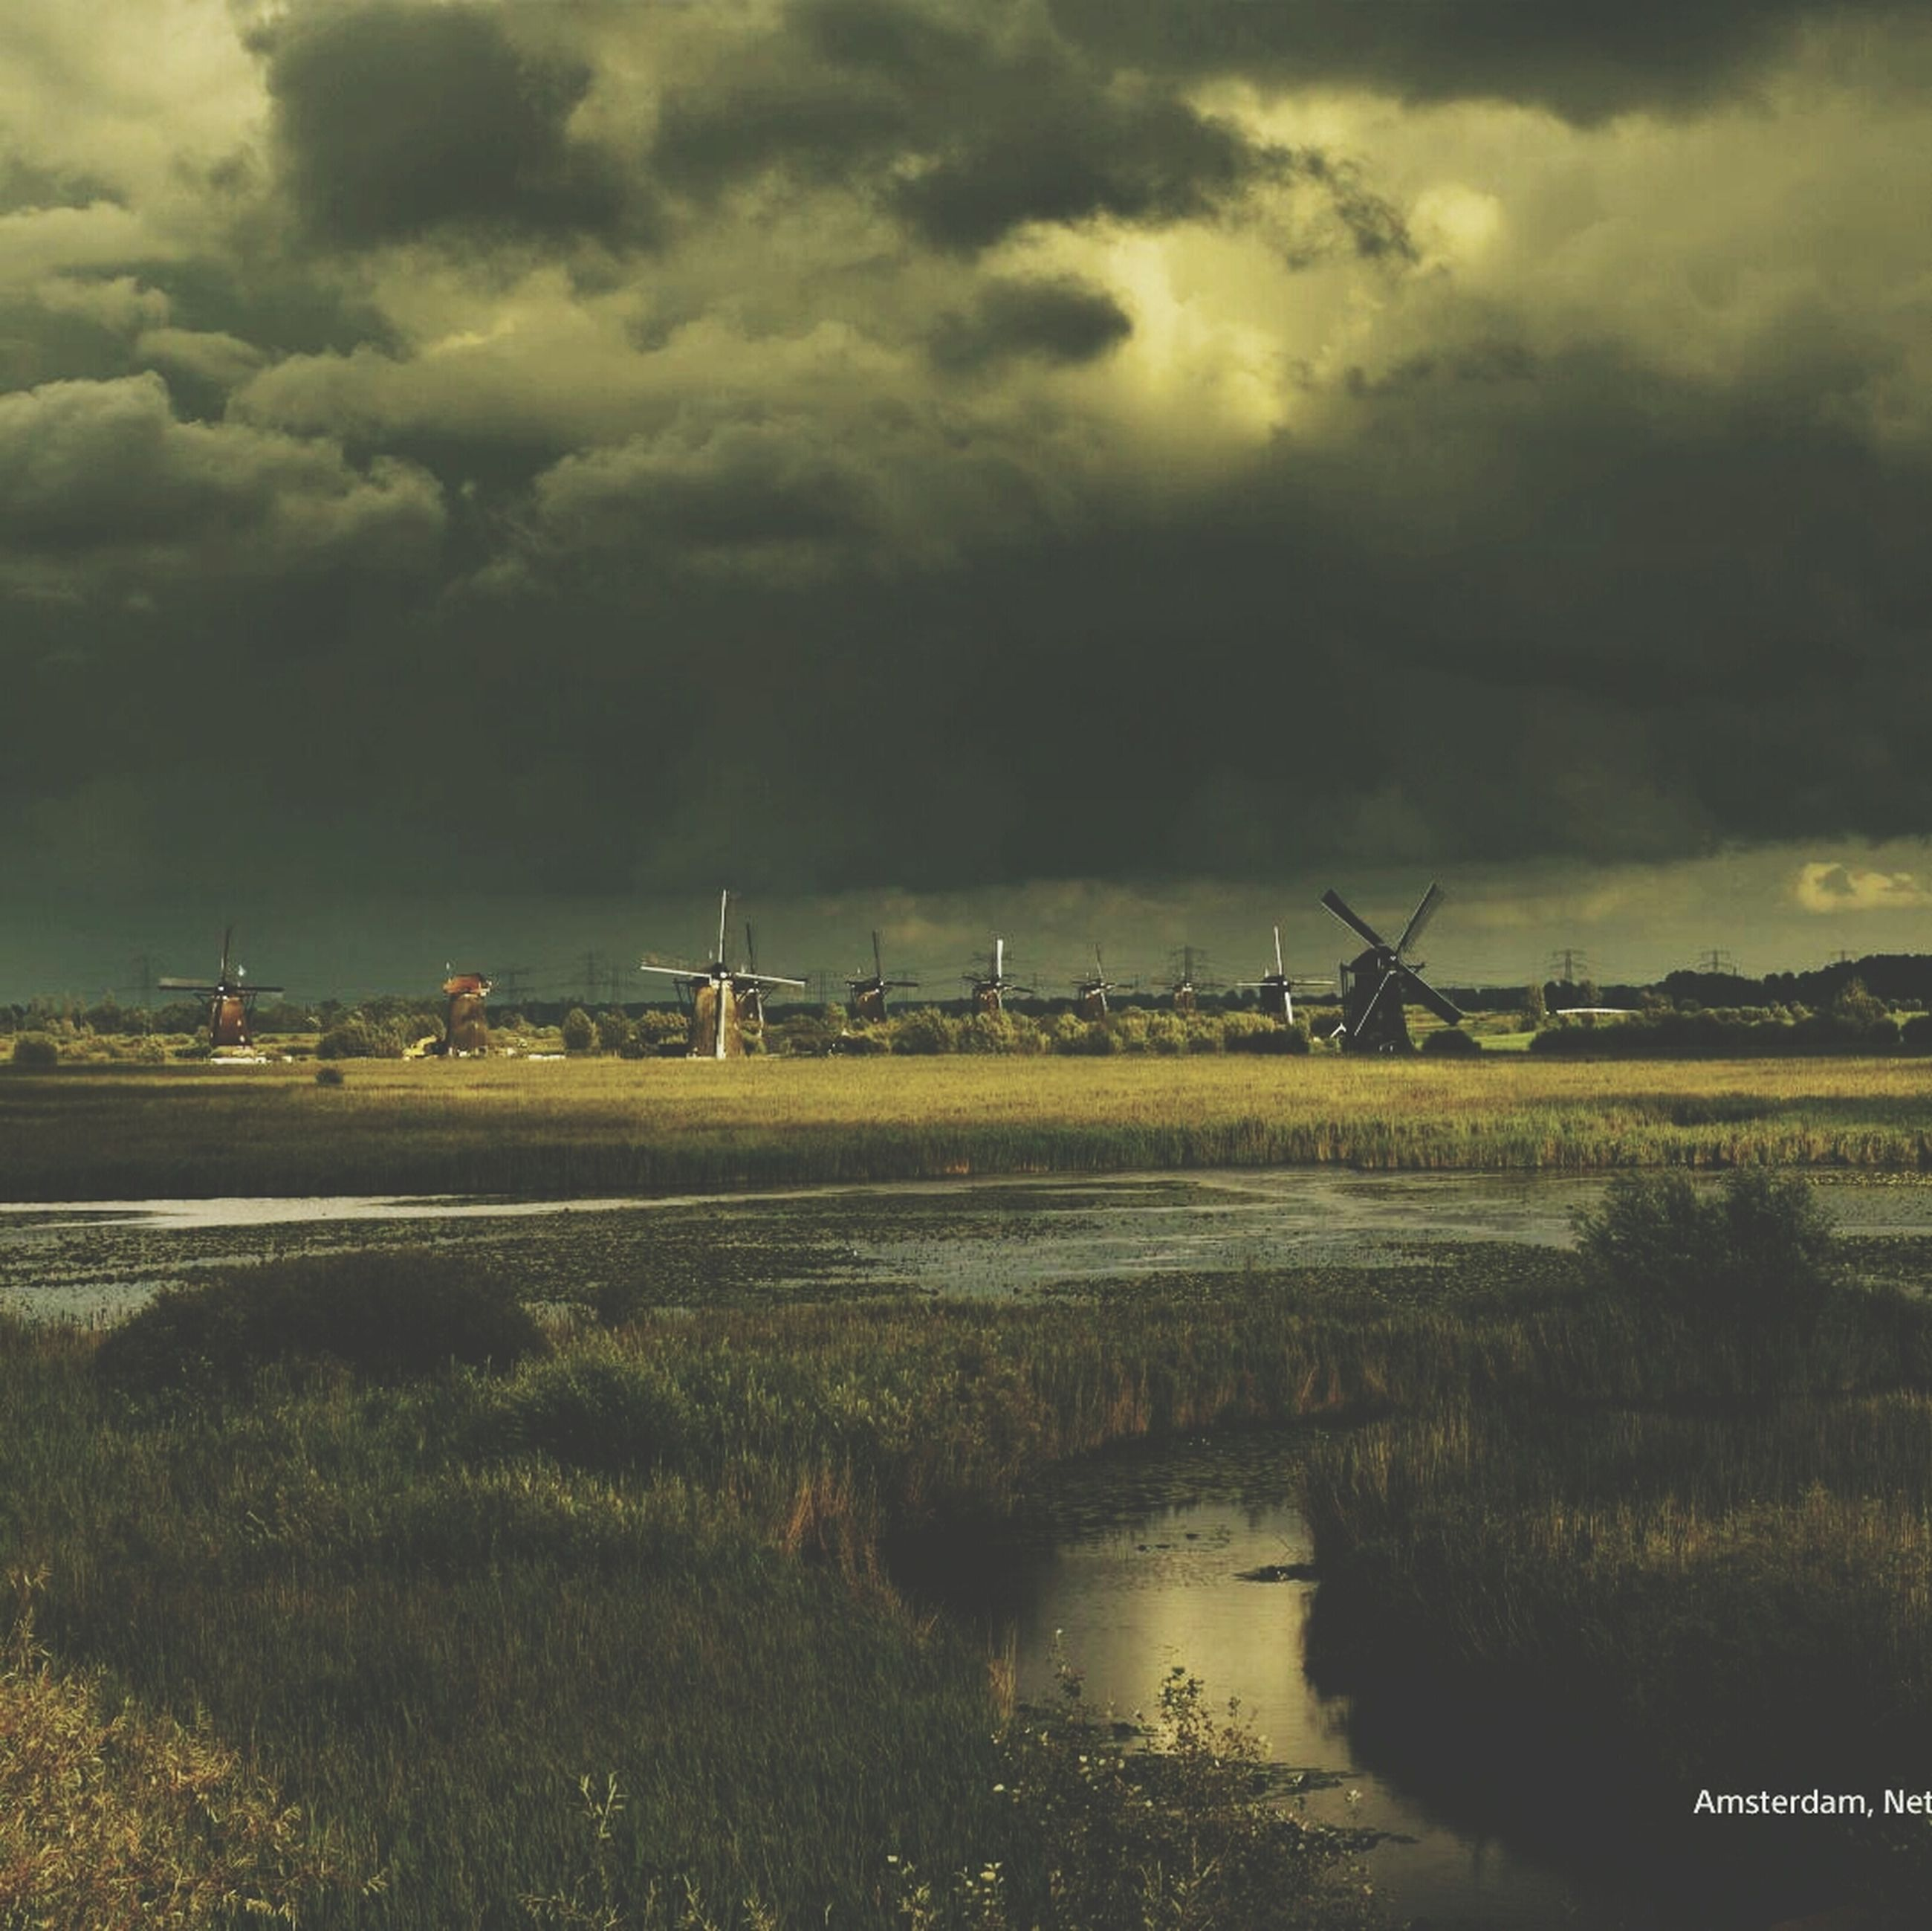 sky, cloud - sky, cloudy, weather, water, tranquil scene, tranquility, overcast, nature, scenics, landscape, beauty in nature, cloud, storm cloud, grass, field, river, outdoors, dusk, transportation